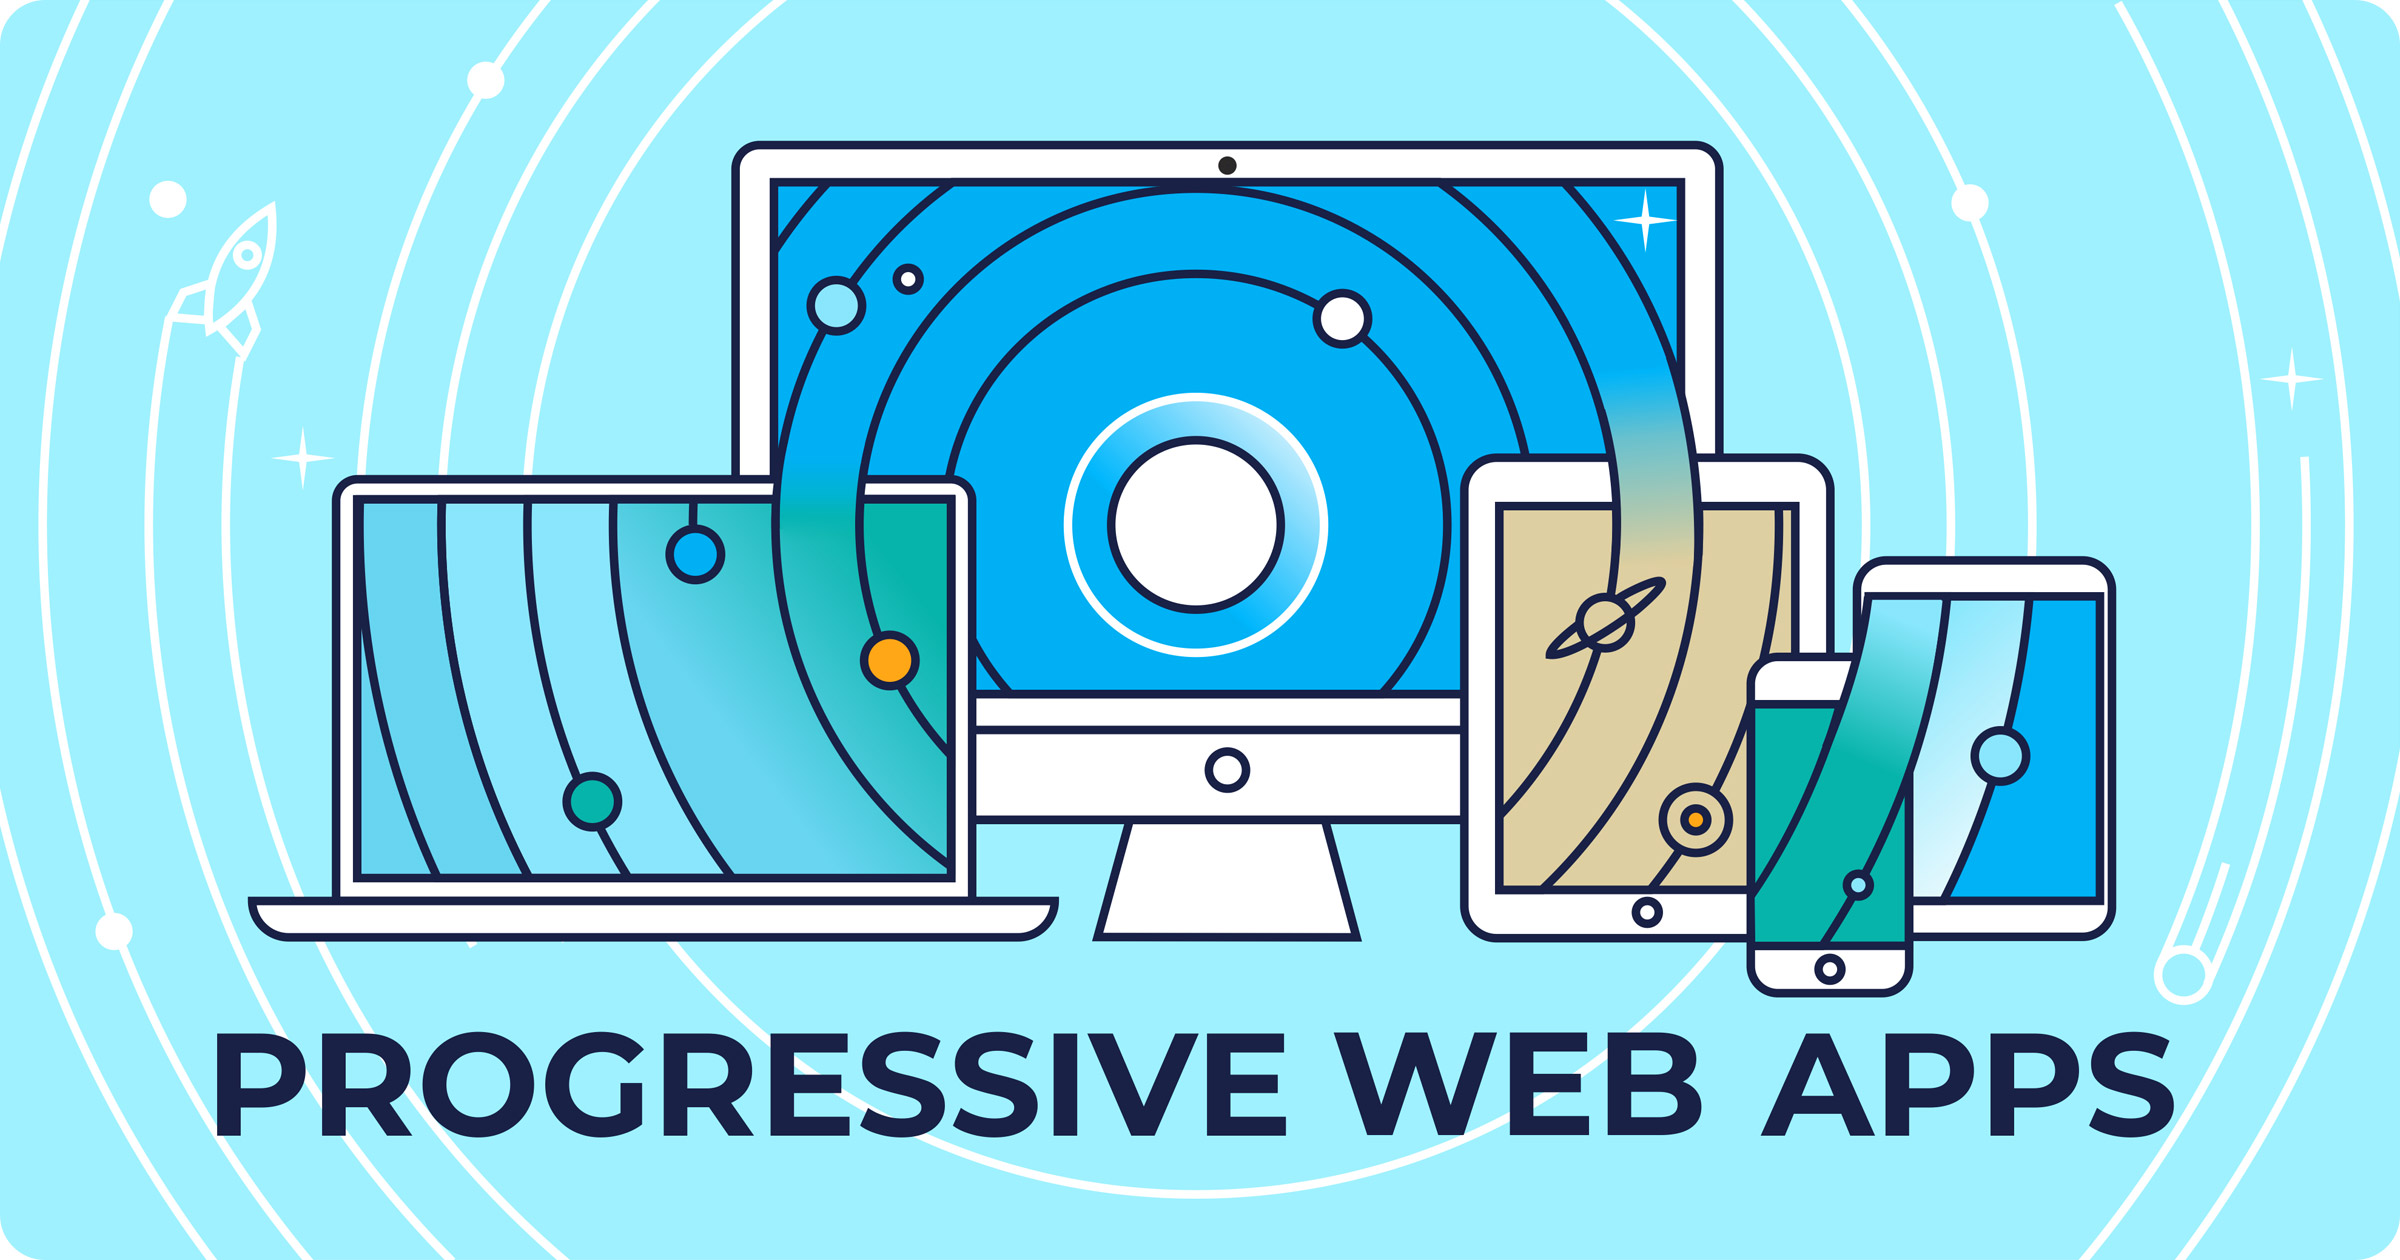 What is a Progressive Web App?